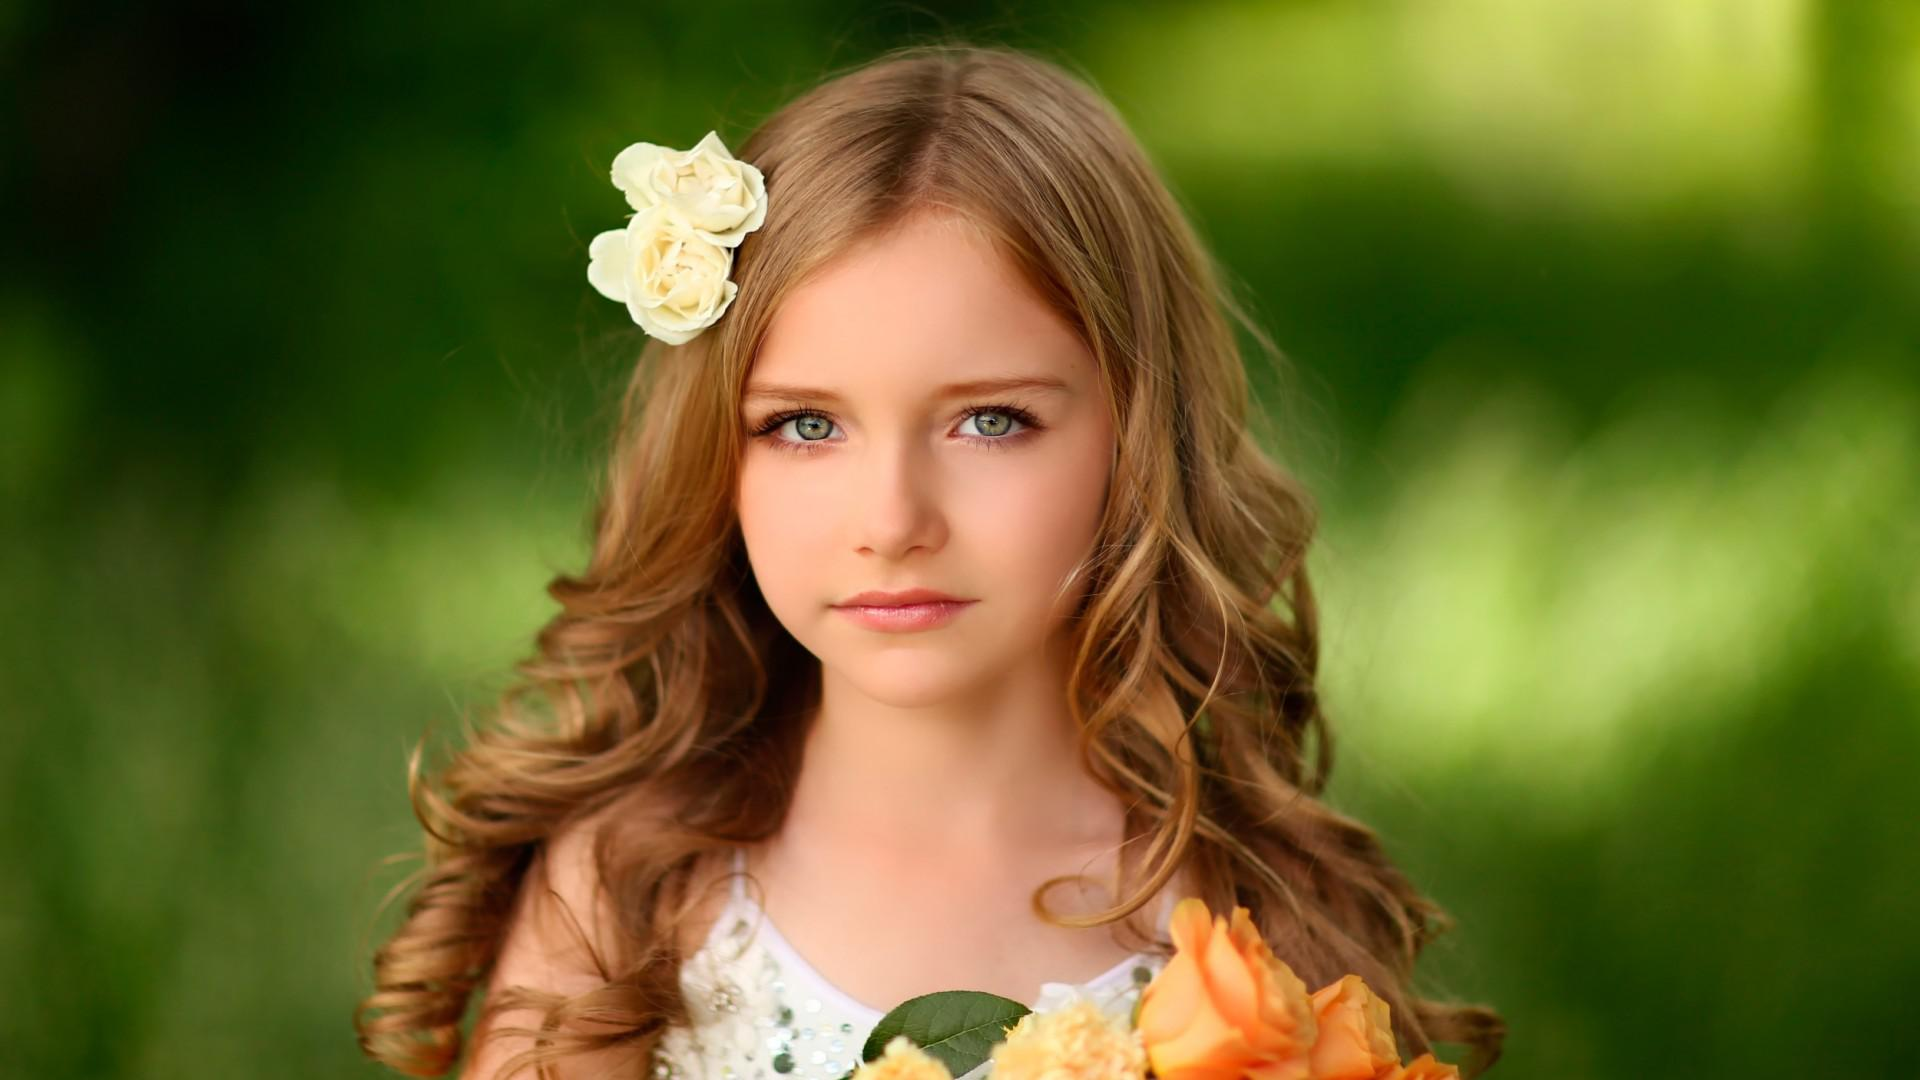 Related Cute Hair Styles Examples & Pictures For Girls